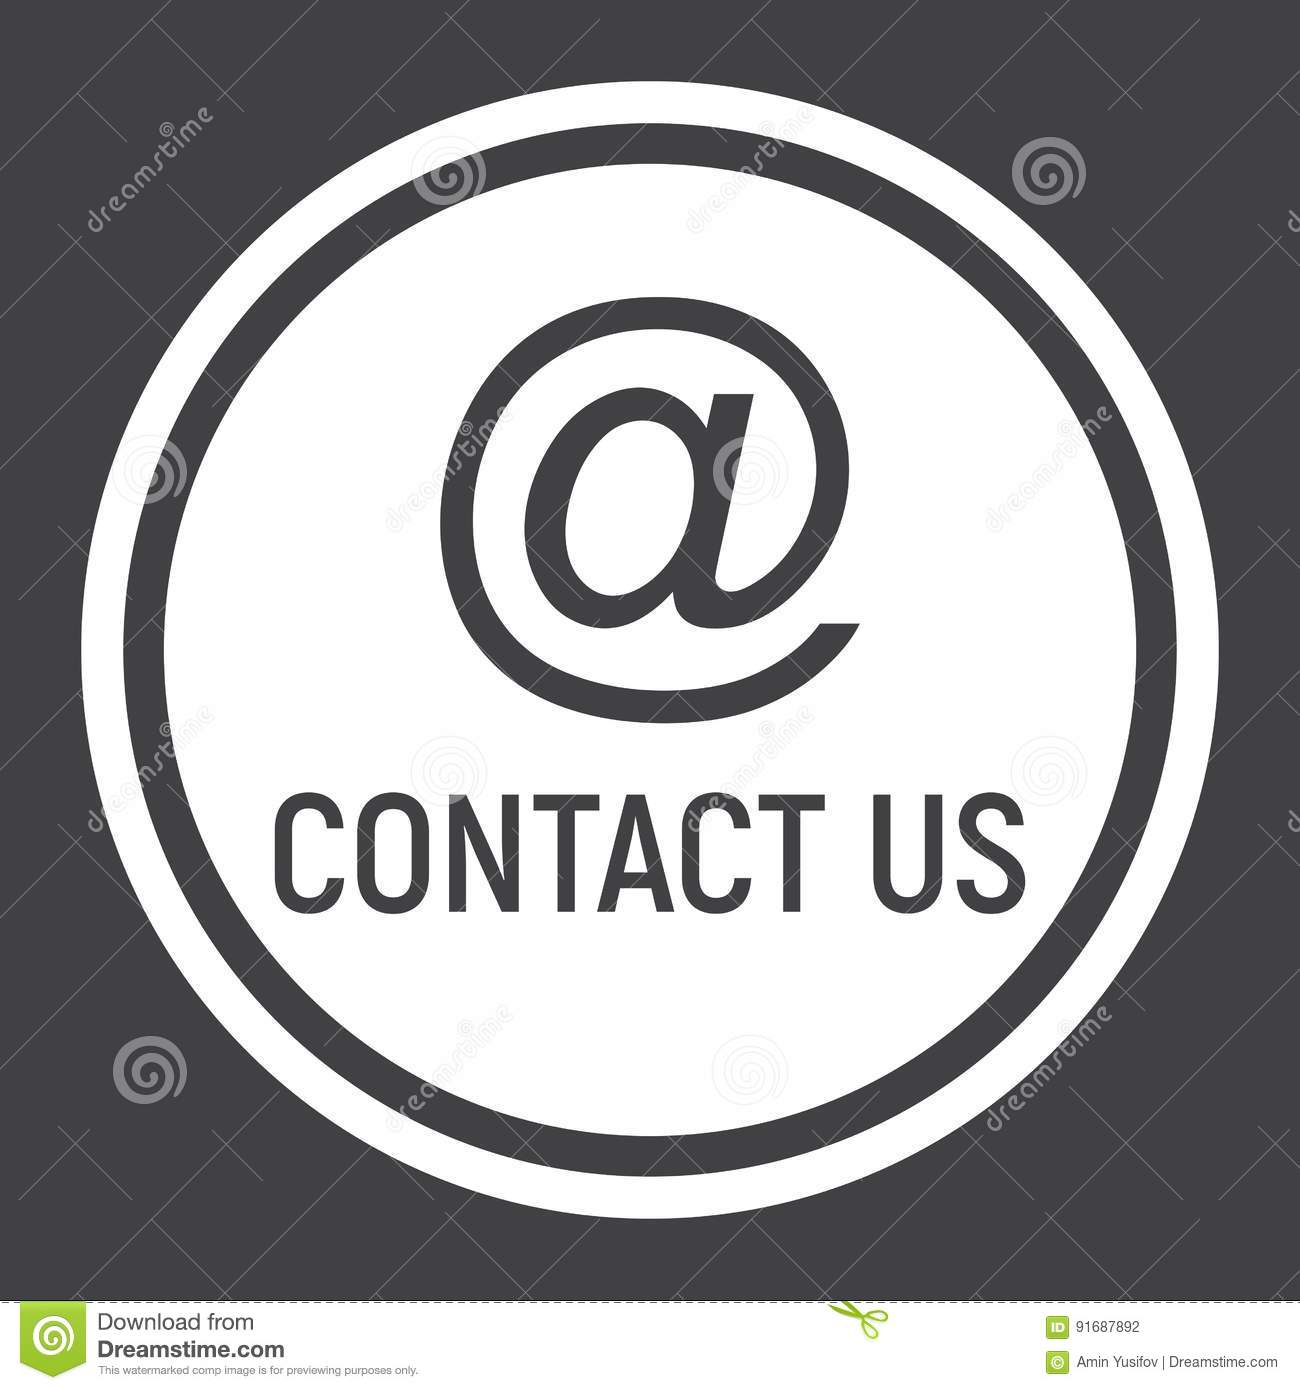 Email address solid icon, contact us and website